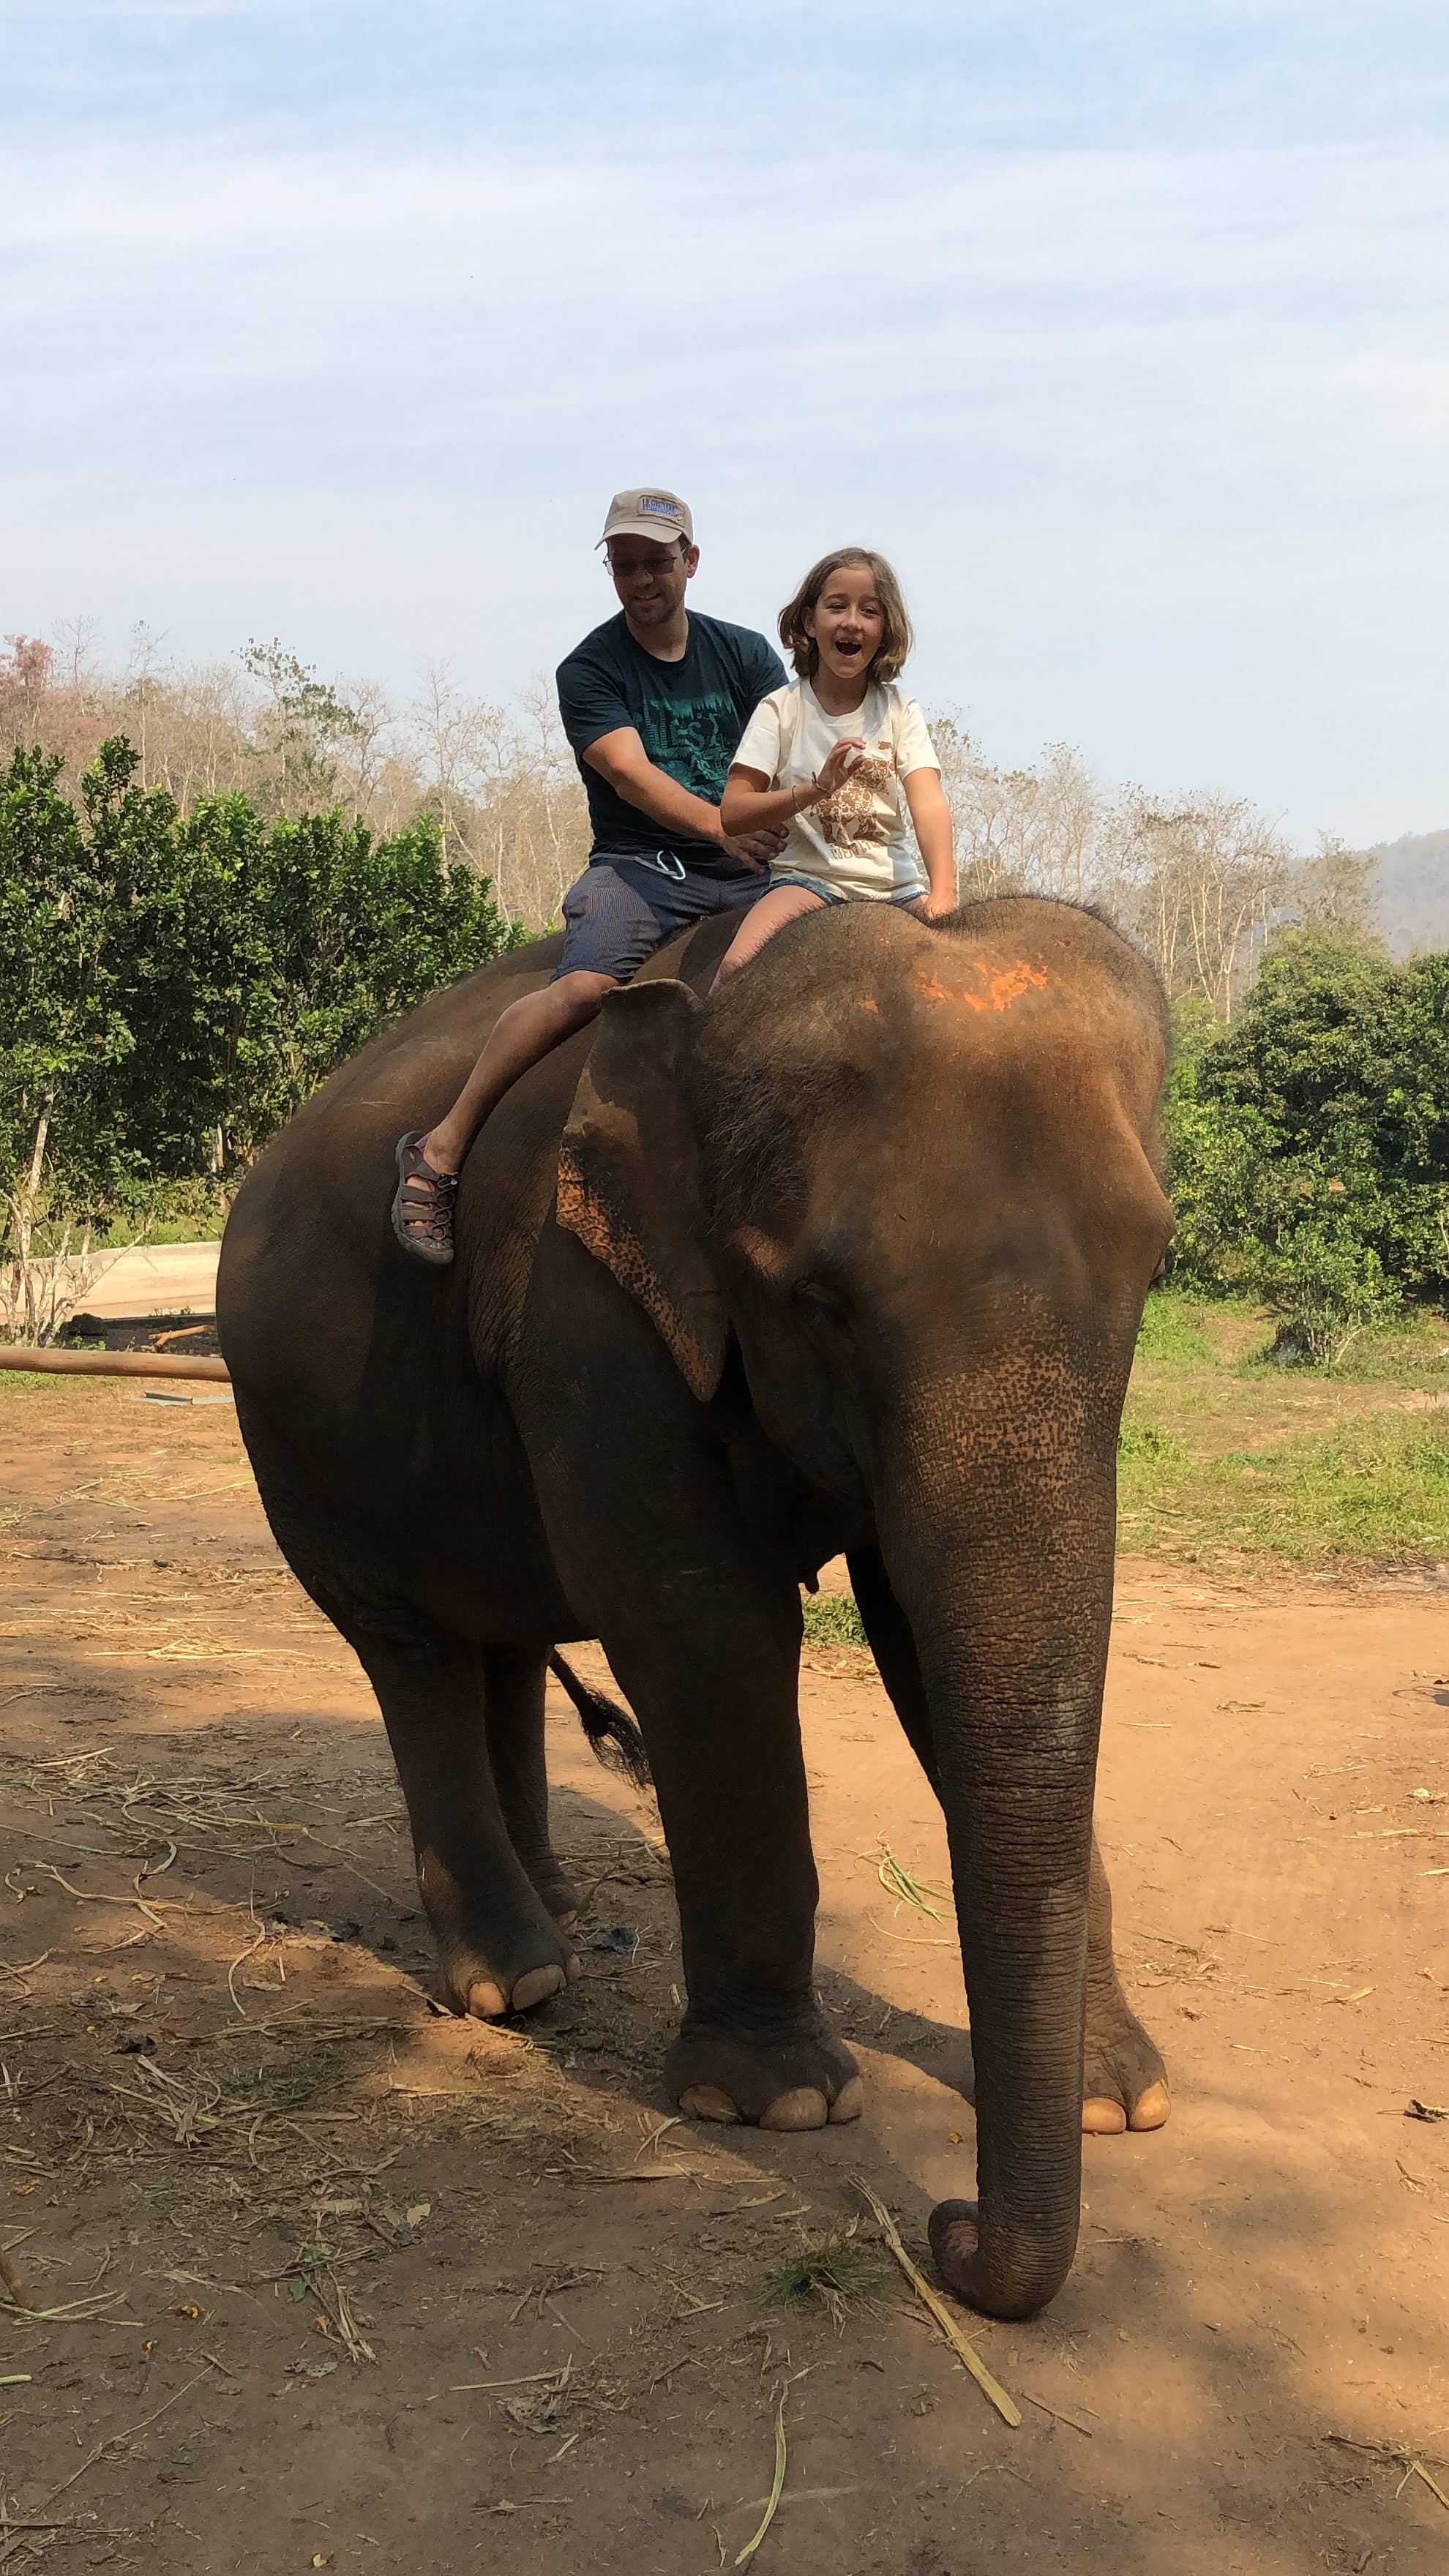 Riding elephants bareback